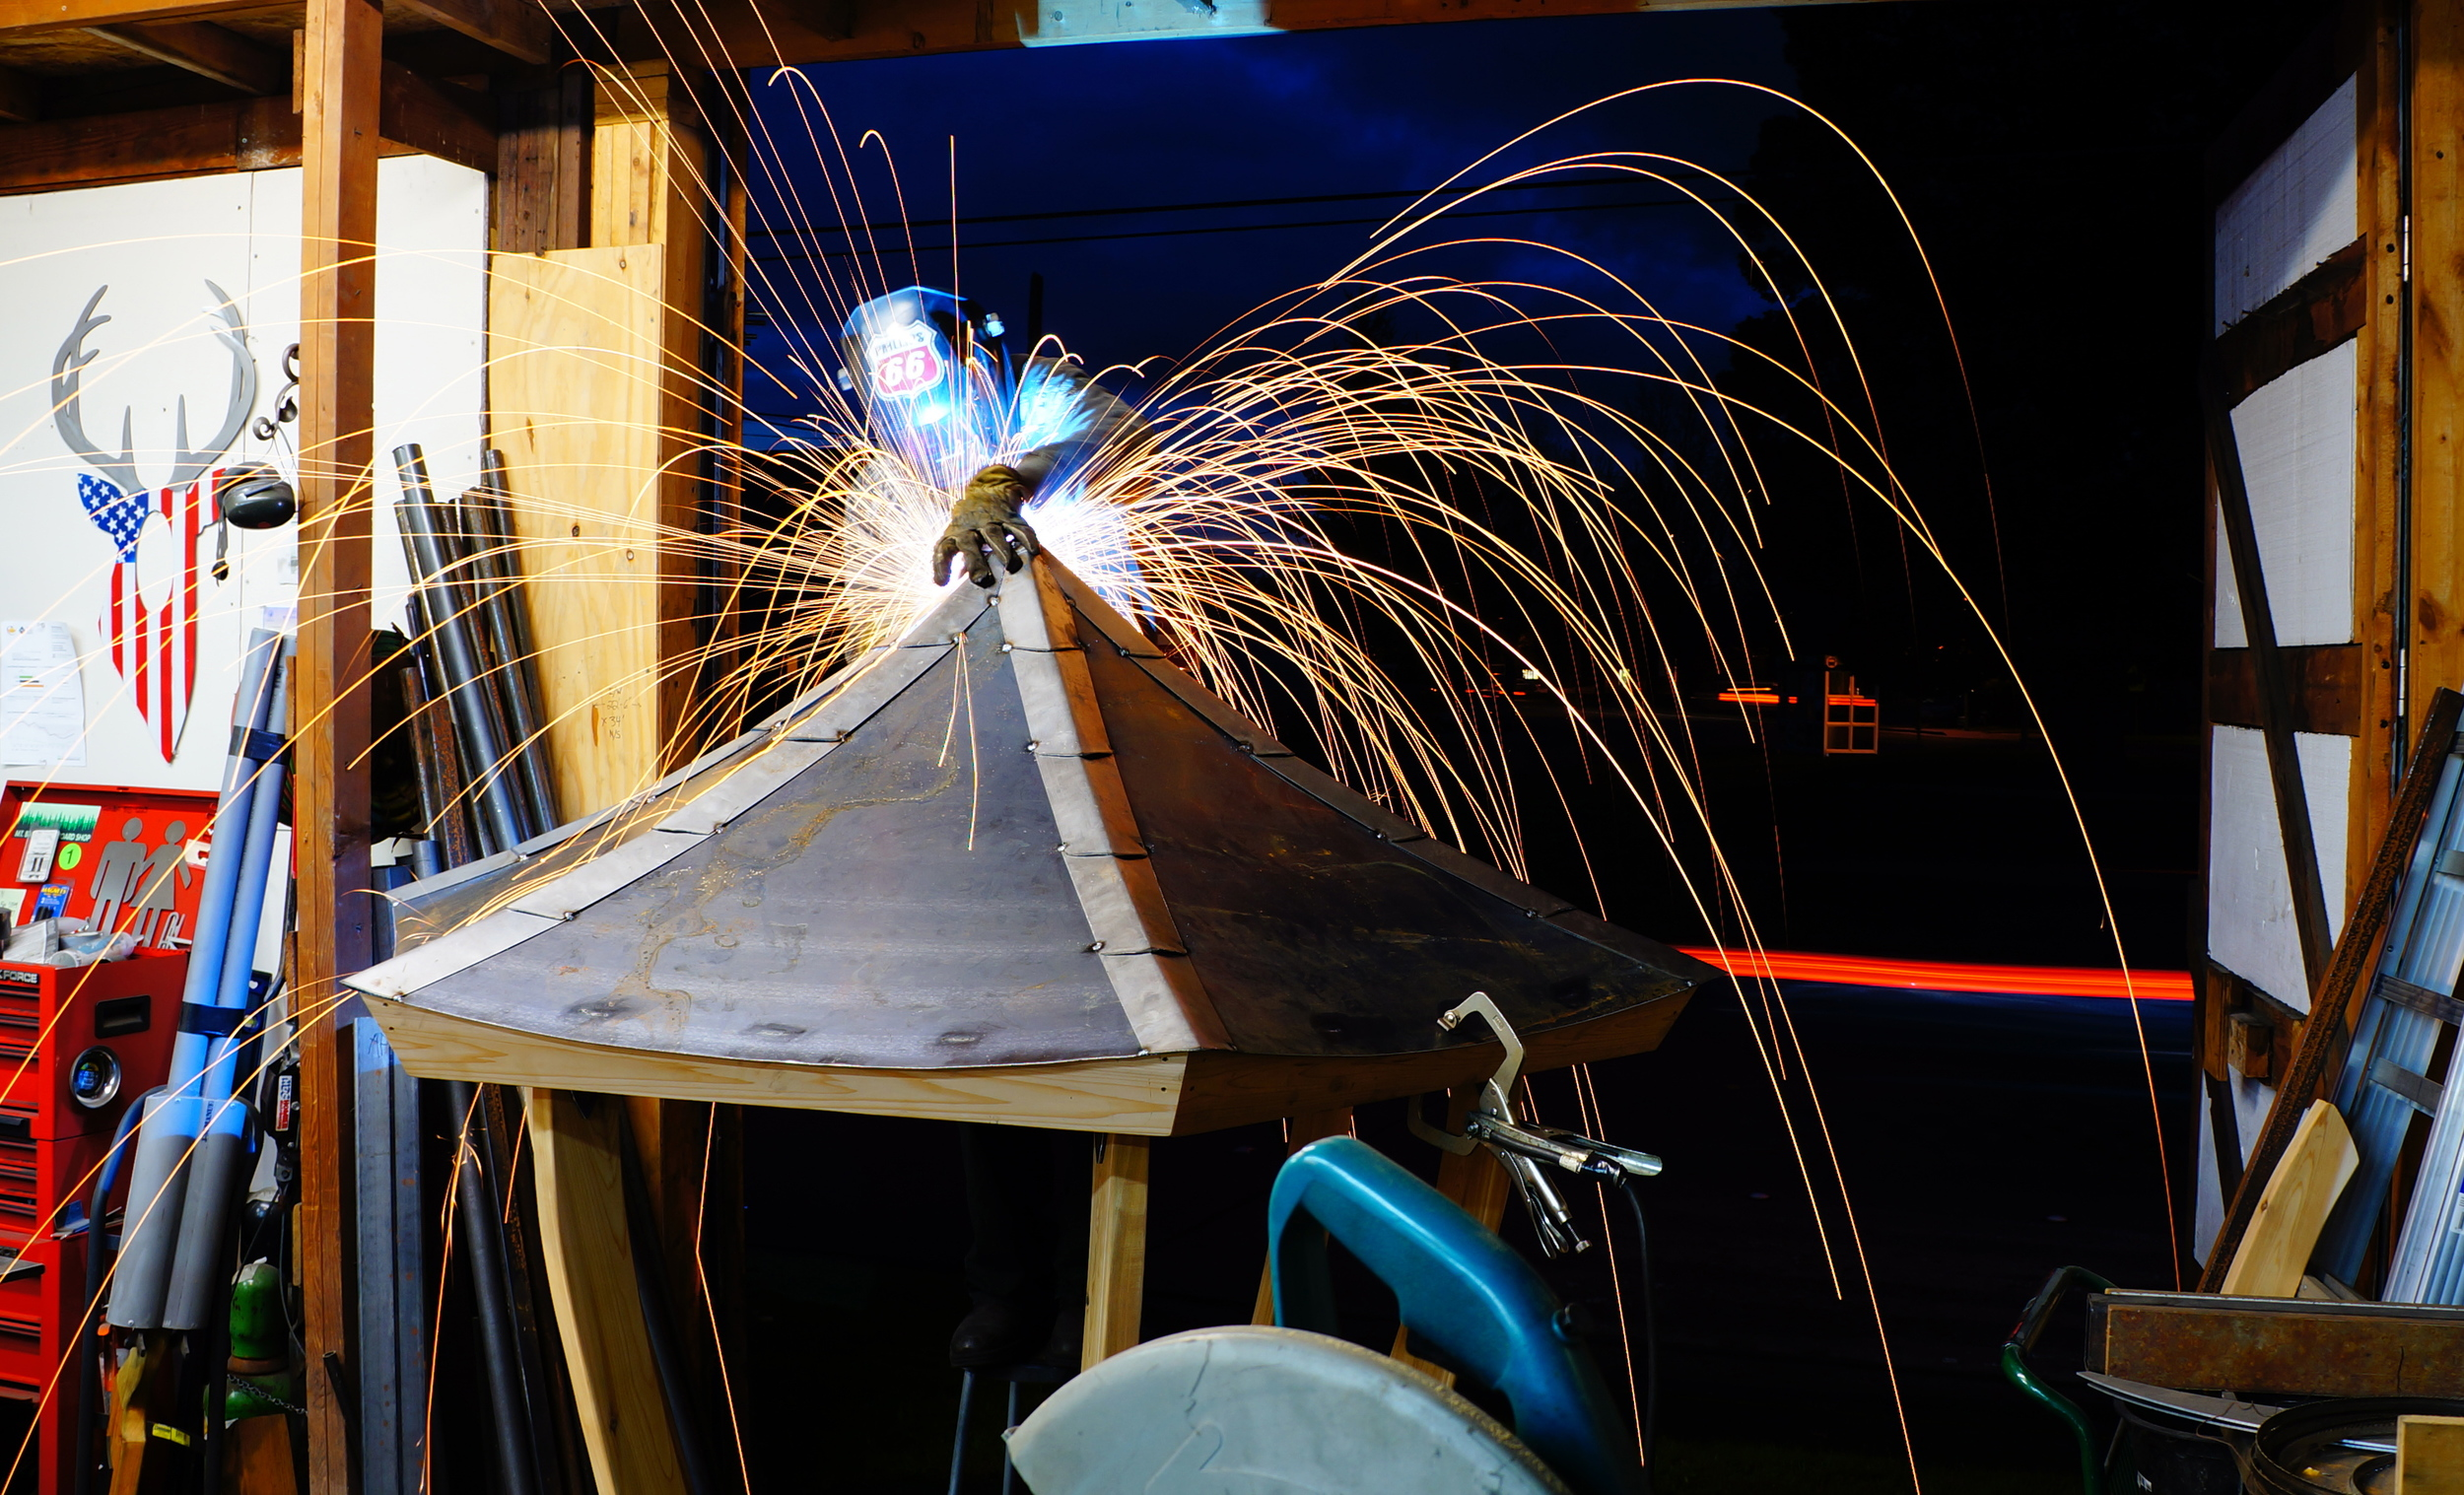 Andy Phillips of Blackfin Design welding the roof panels of the Prayer Wheel Pagoda.